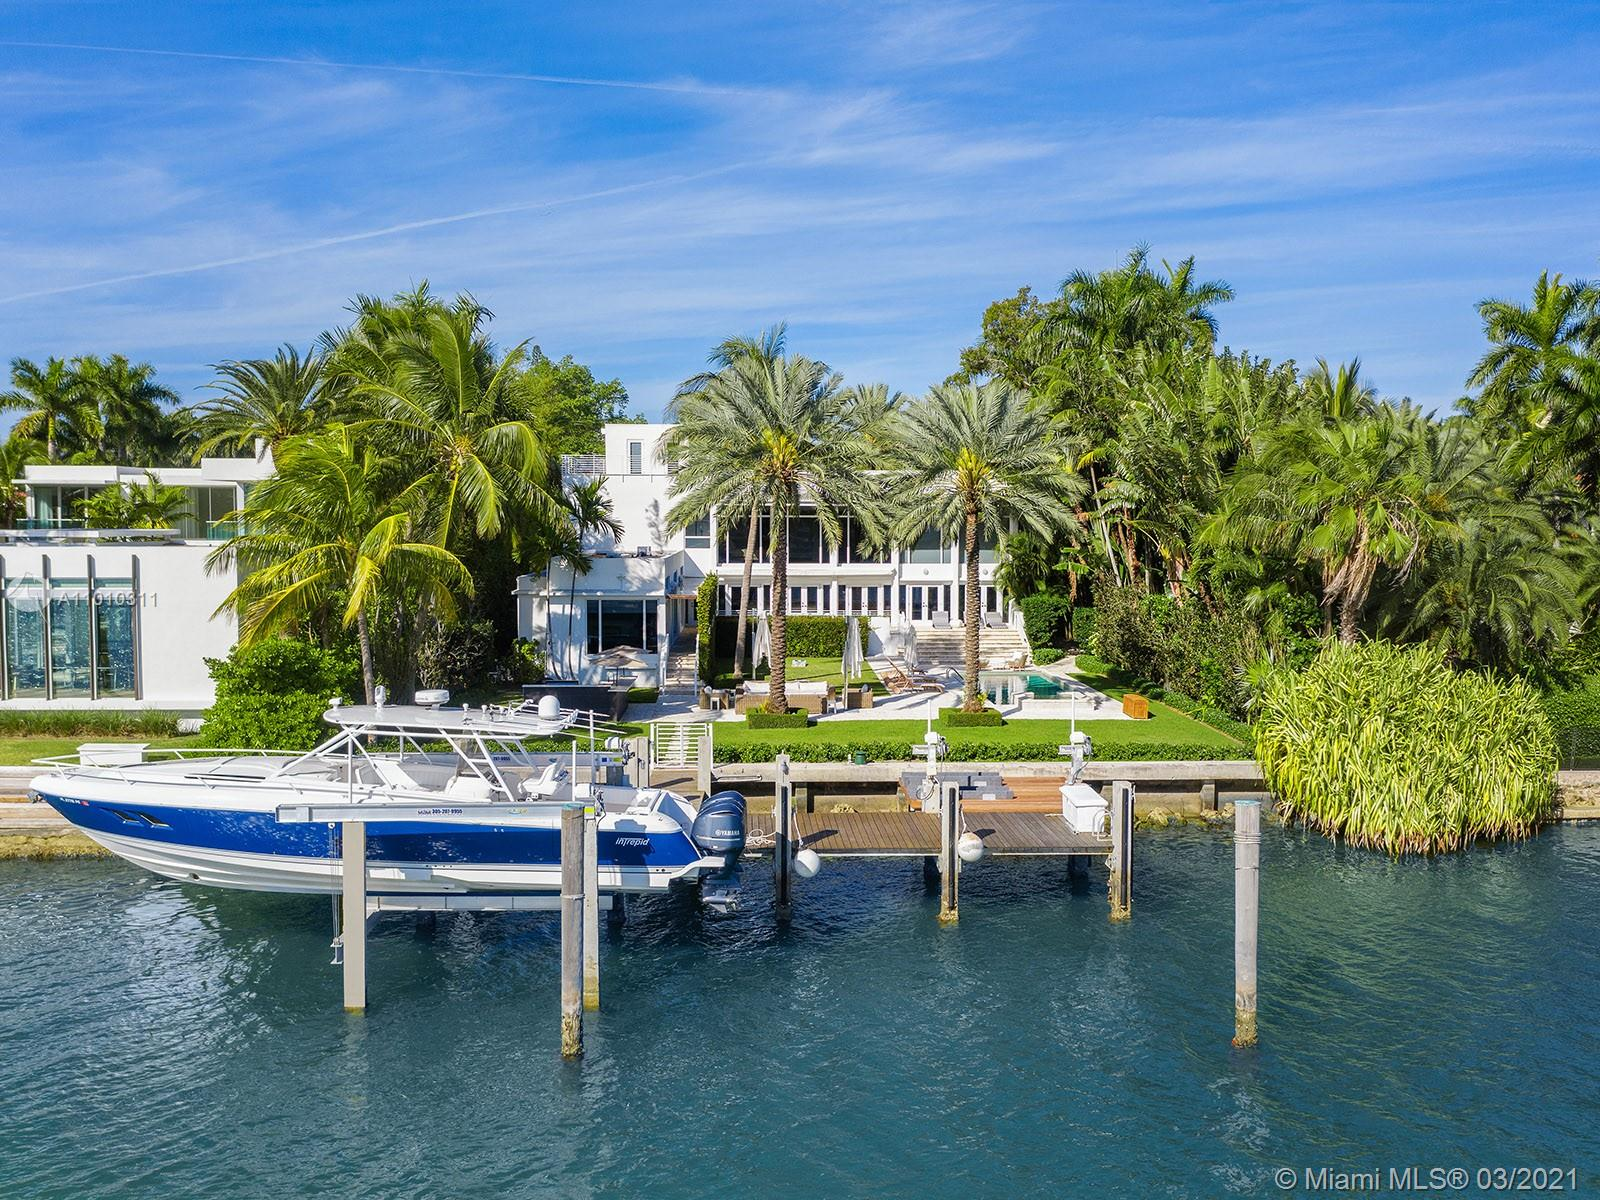 This picturesque contemporary estate is located minutes from South Beach and Downtown Miami, set apart from it all on Miami Beach's tranquil Palm Island. With 100 linear feet on Biscayne Bay, and views of the Miami skyline, the 6,995 square foot home includes a master suite spanning the entire second floor of the main house, a luxurious back yard ideal for entertaining - including pool, spa, summer kitchen, and serviced dock with lifts for a boat and jet skis - a large guest house, and a four car garage. The kitchen has been updated with Wolf and Subzero appliances, adjacent to the double-height living room, formal dining room, wet bar, and family room. Meanwhile, a discrete back stair leads to the rooftop crows nest, an ideal pertch to get away from it all while surveying your domain.